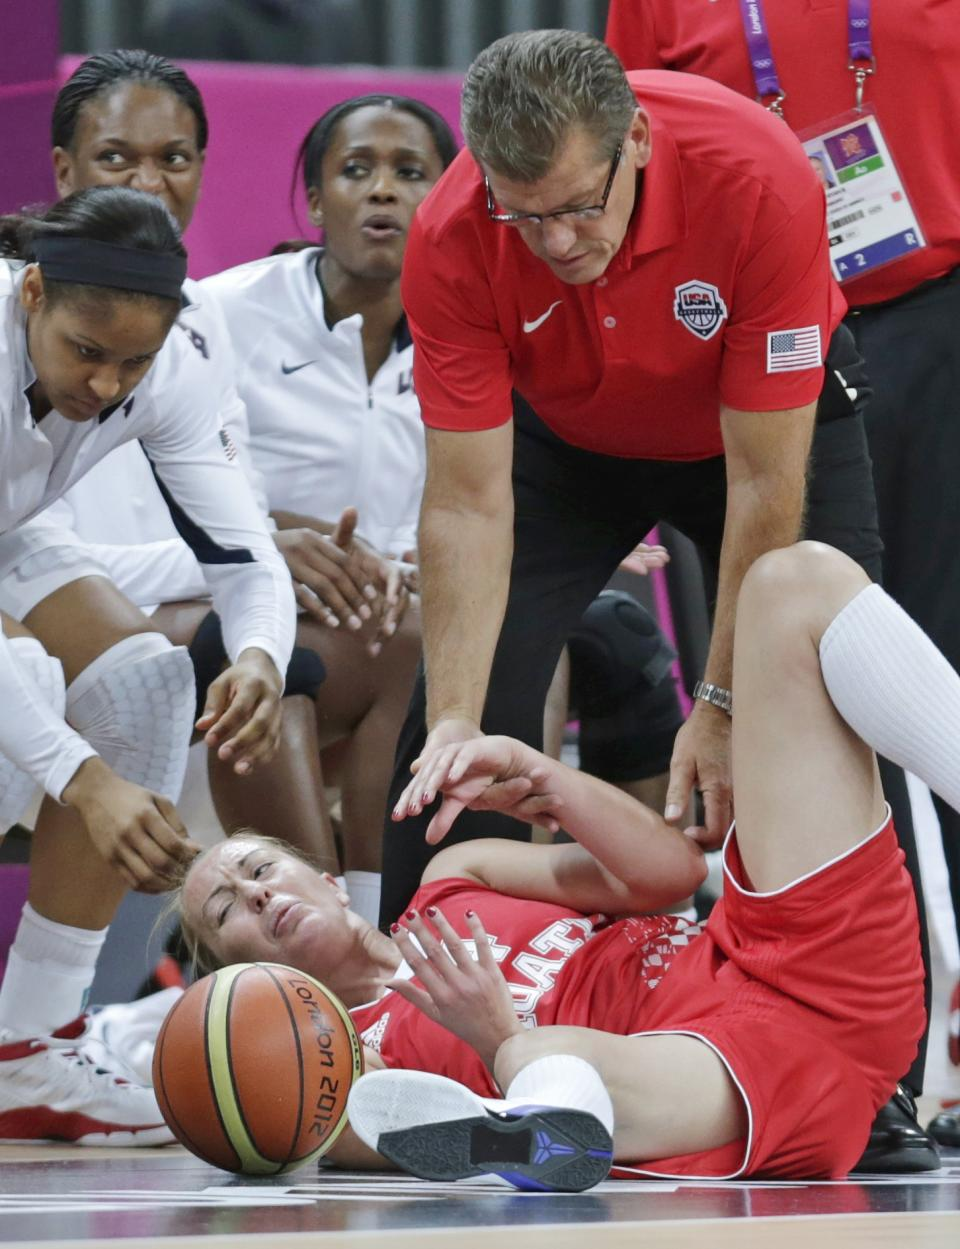 USA head coach Geno Auriemma, top, helps up Croatia guard Sandra Mandir after she was knocked out of bounds during a basketball game at the 2012 Summer Olympics, Saturday, July 28, 2012, in London. (AP Photo/Charles Krupa)